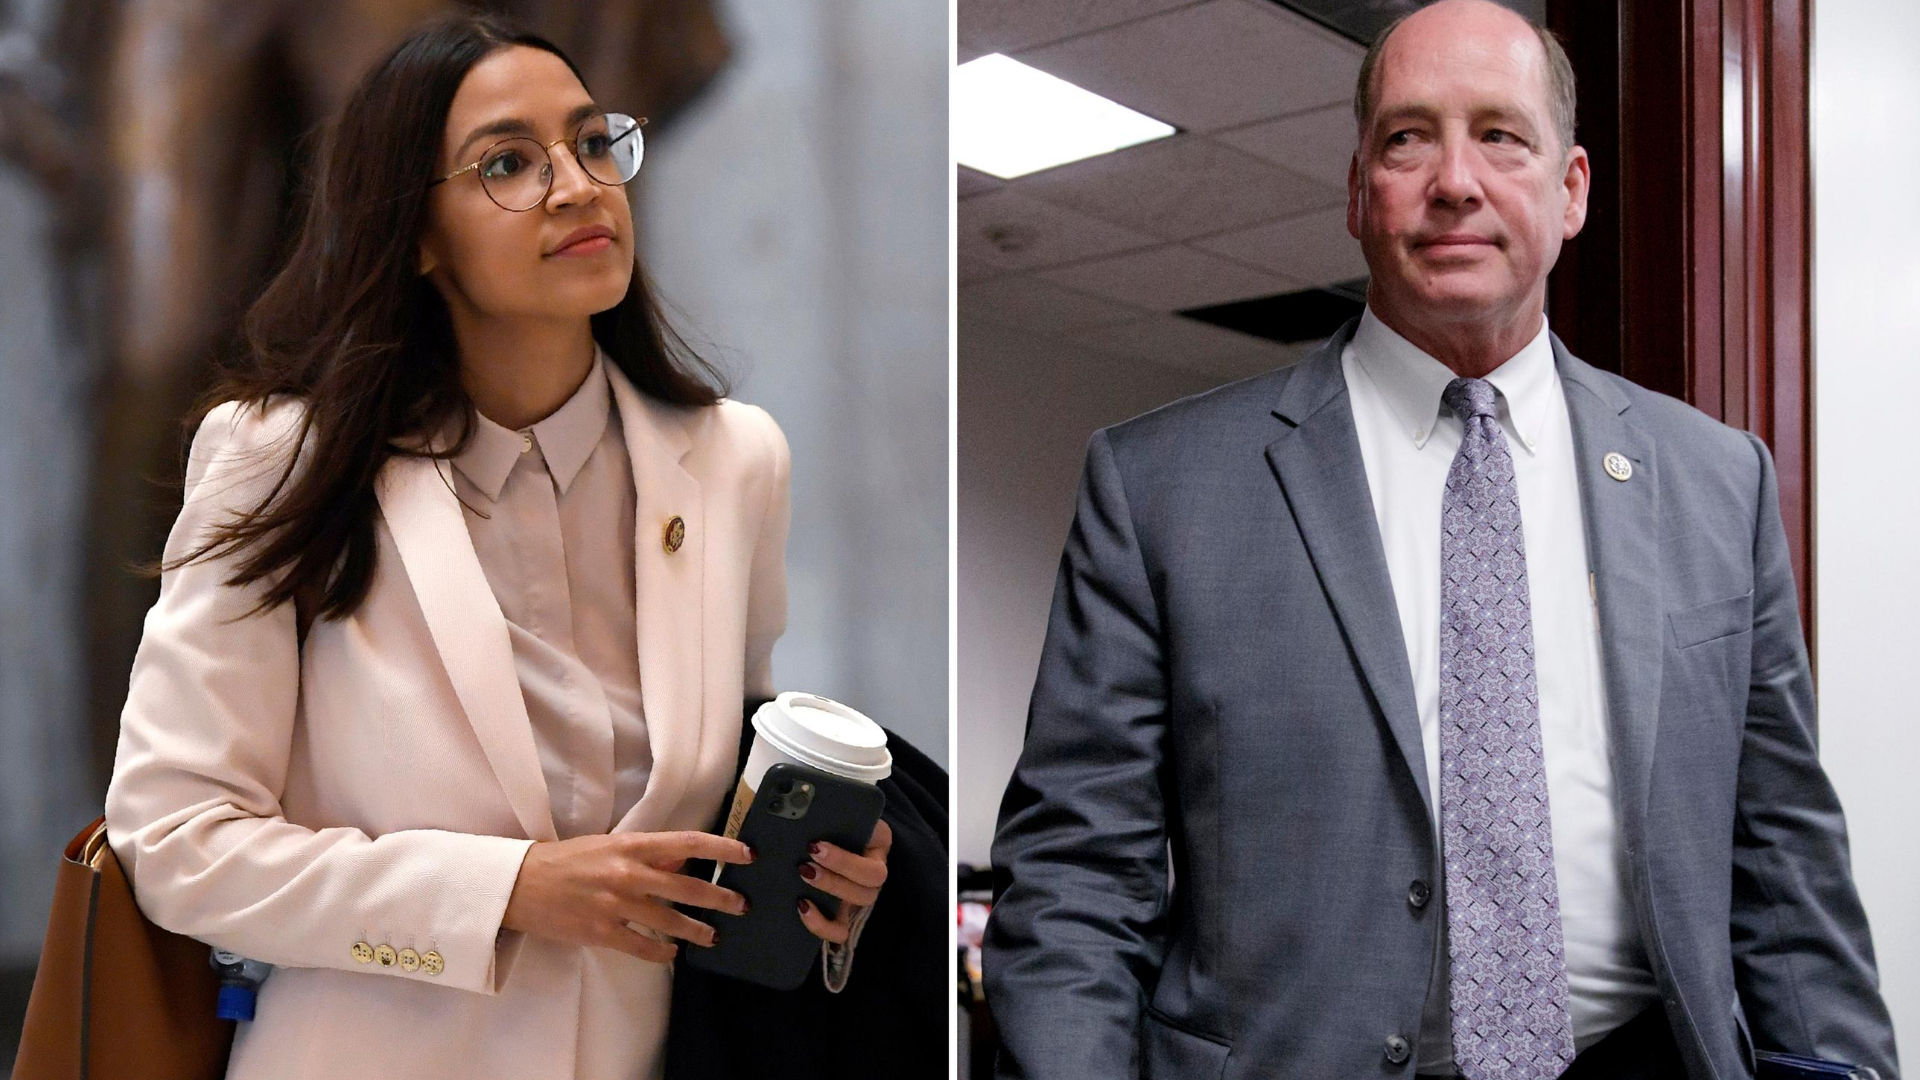 This combo shows Rep. Alexandria Ocasio-Cortez, D-N.Y., walks Capitol Hill in Washington, on March 27, 2020, left, and Rep. Ted Yoho, R-Fla., at the Capitol in Washington on March 28, 2017. (AP Photo, File)